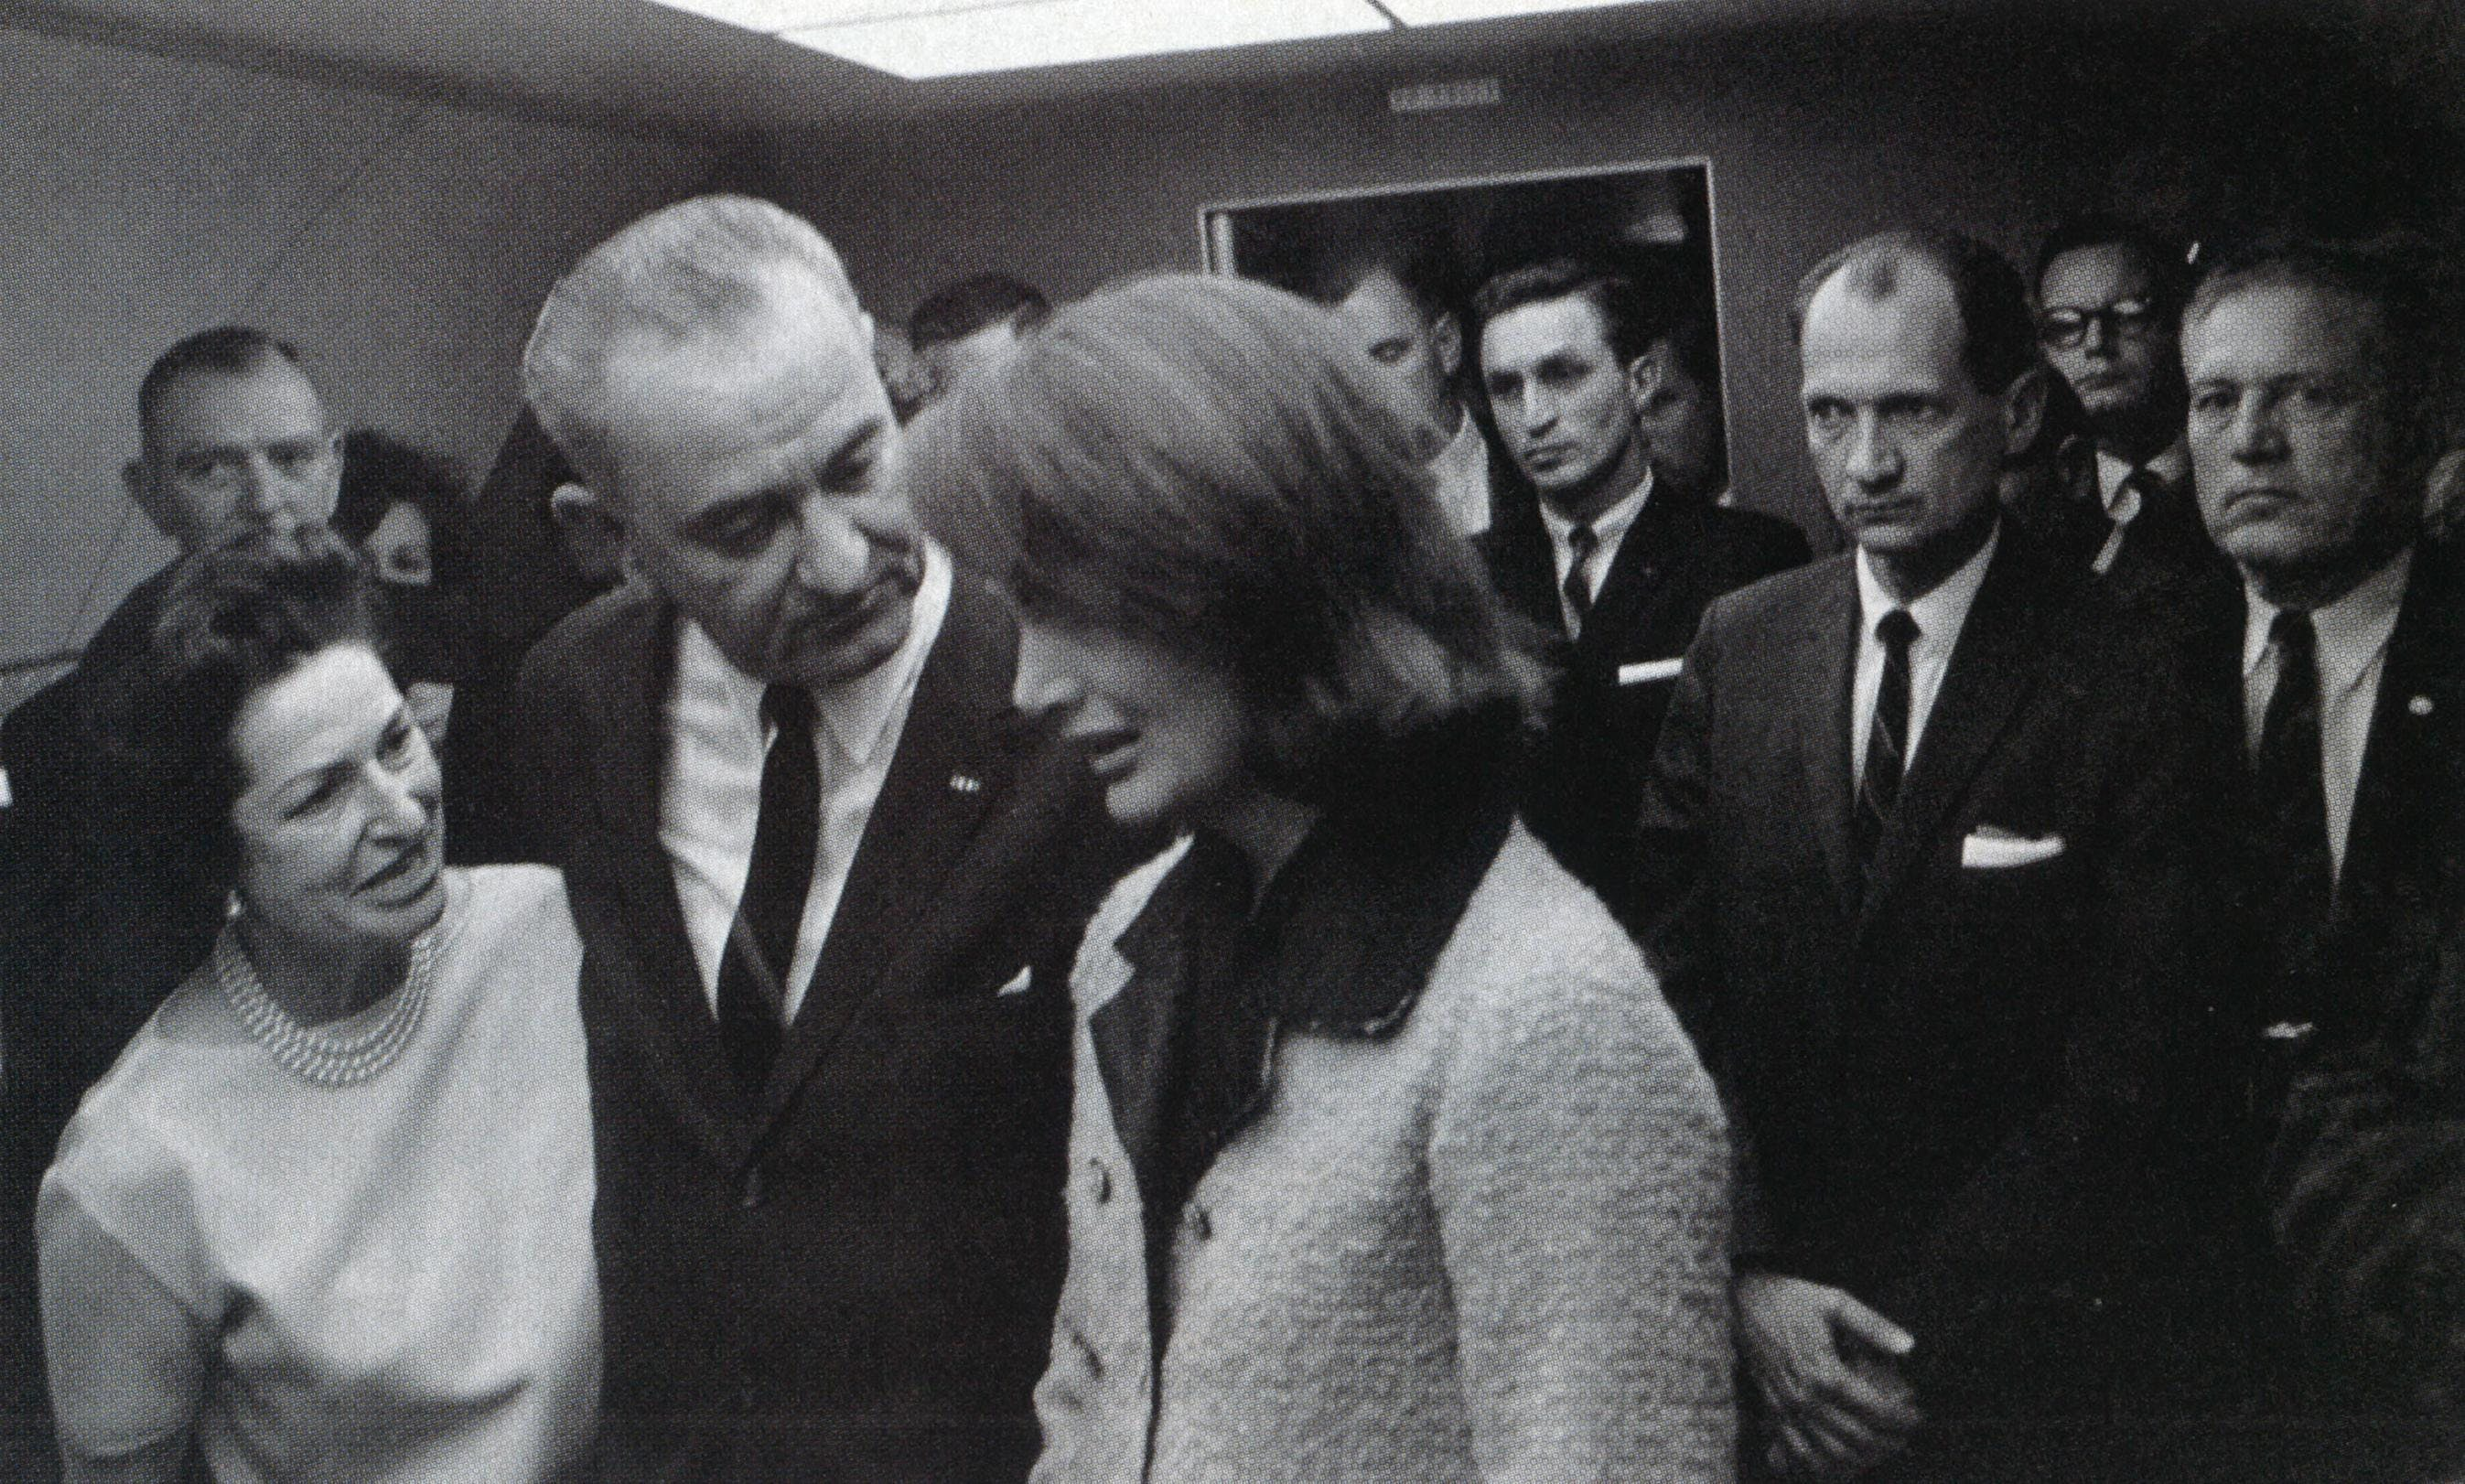 Shortly after the murder of President Kennedy, Lady Bird and LBJ comfort Mrs. Kennedy aboard Air Force One. Johnson later denied accusations that he had been insensitive to the Kennedy family after the tragedy.